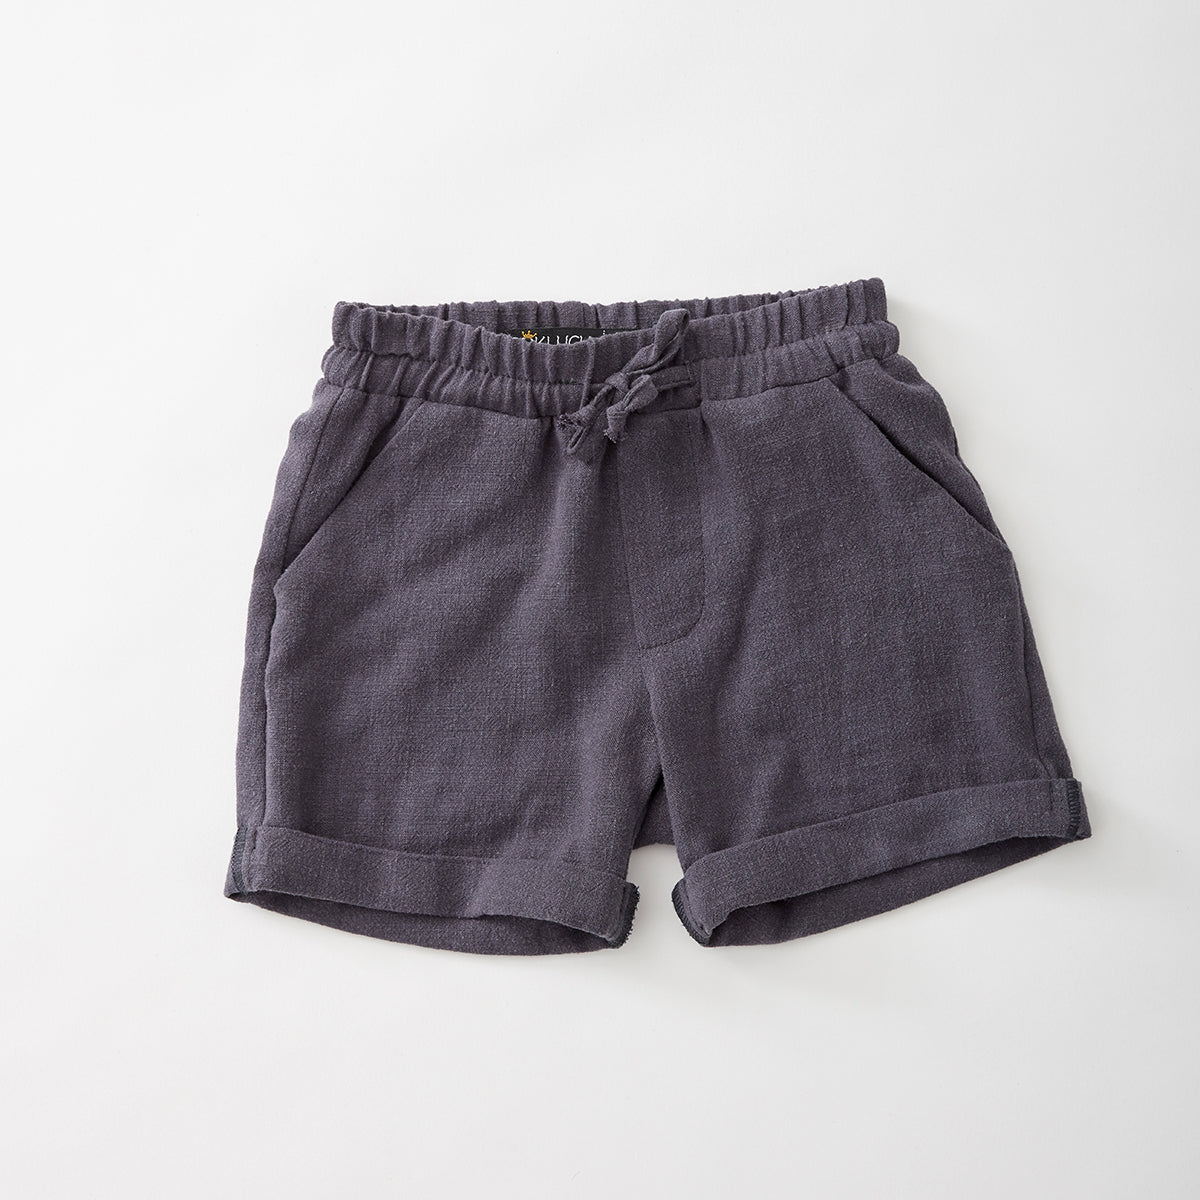 short-tacoma-gris-cokluch-mini-printemps-ete-2019